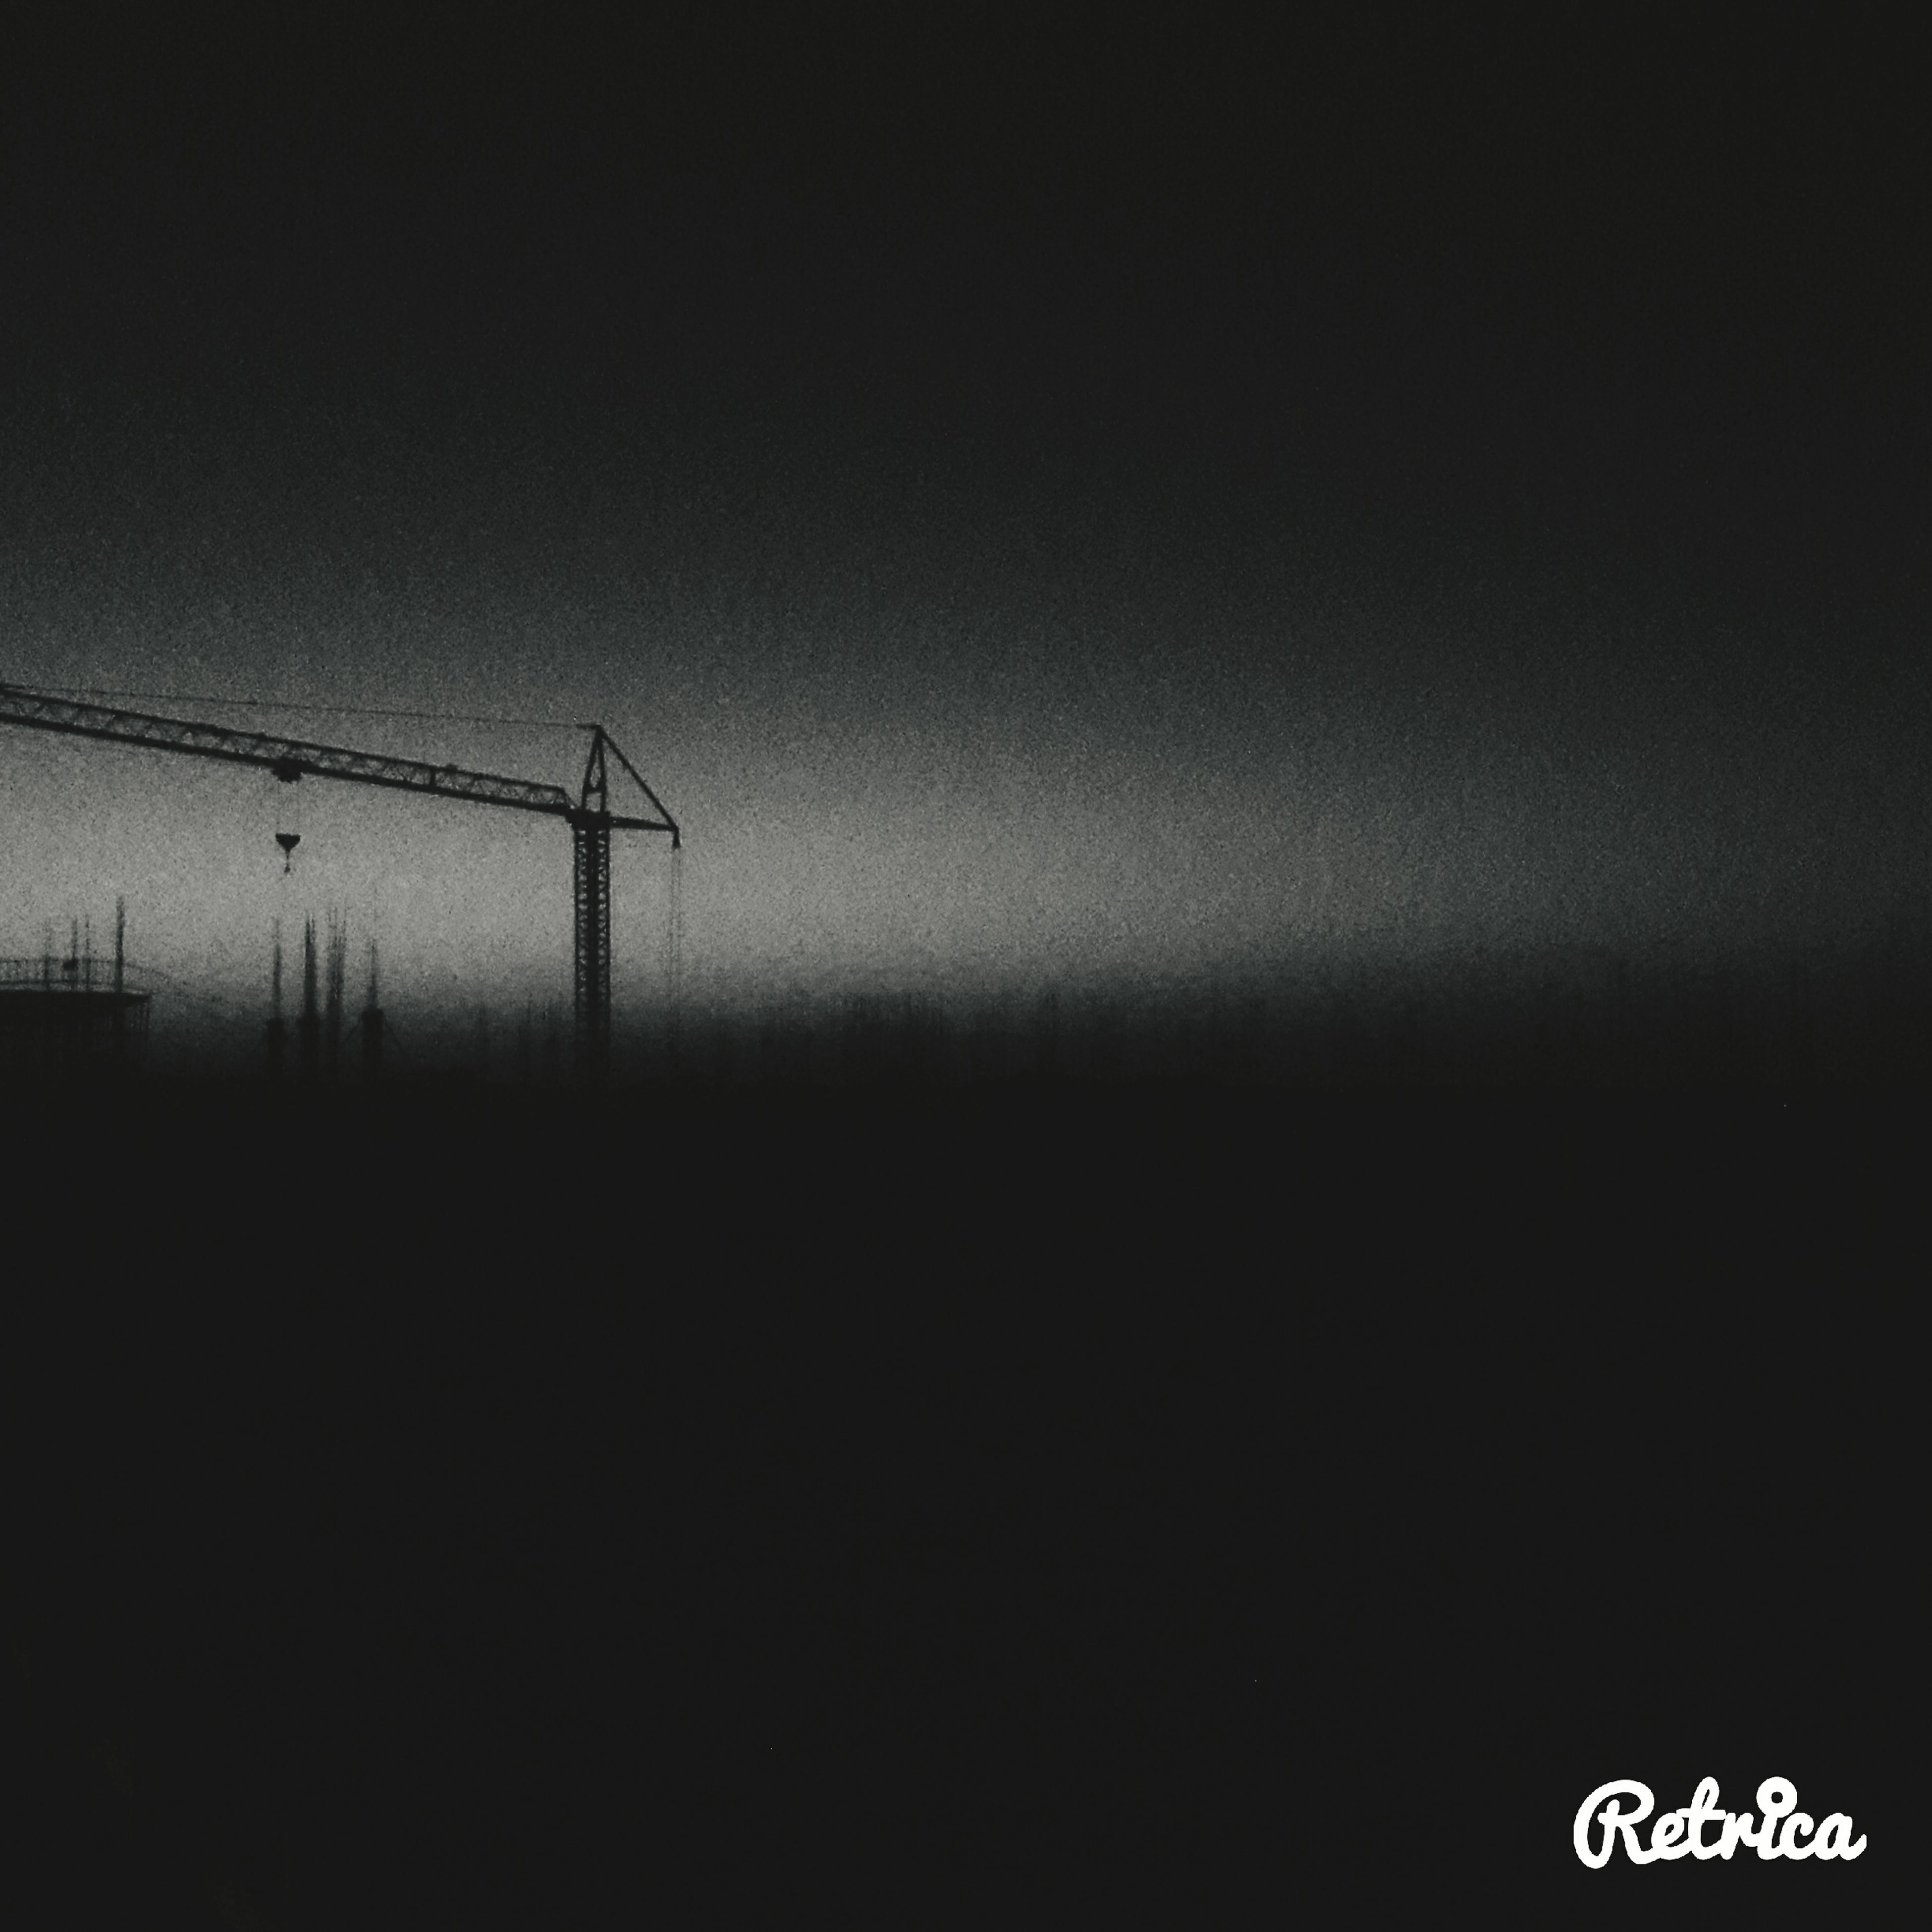 copy space, silhouette, communication, sky, low angle view, clear sky, no people, dusk, outdoors, tranquility, electricity, nature, electricity pylon, connection, fuel and power generation, street light, guidance, power supply, tranquil scene, landscape